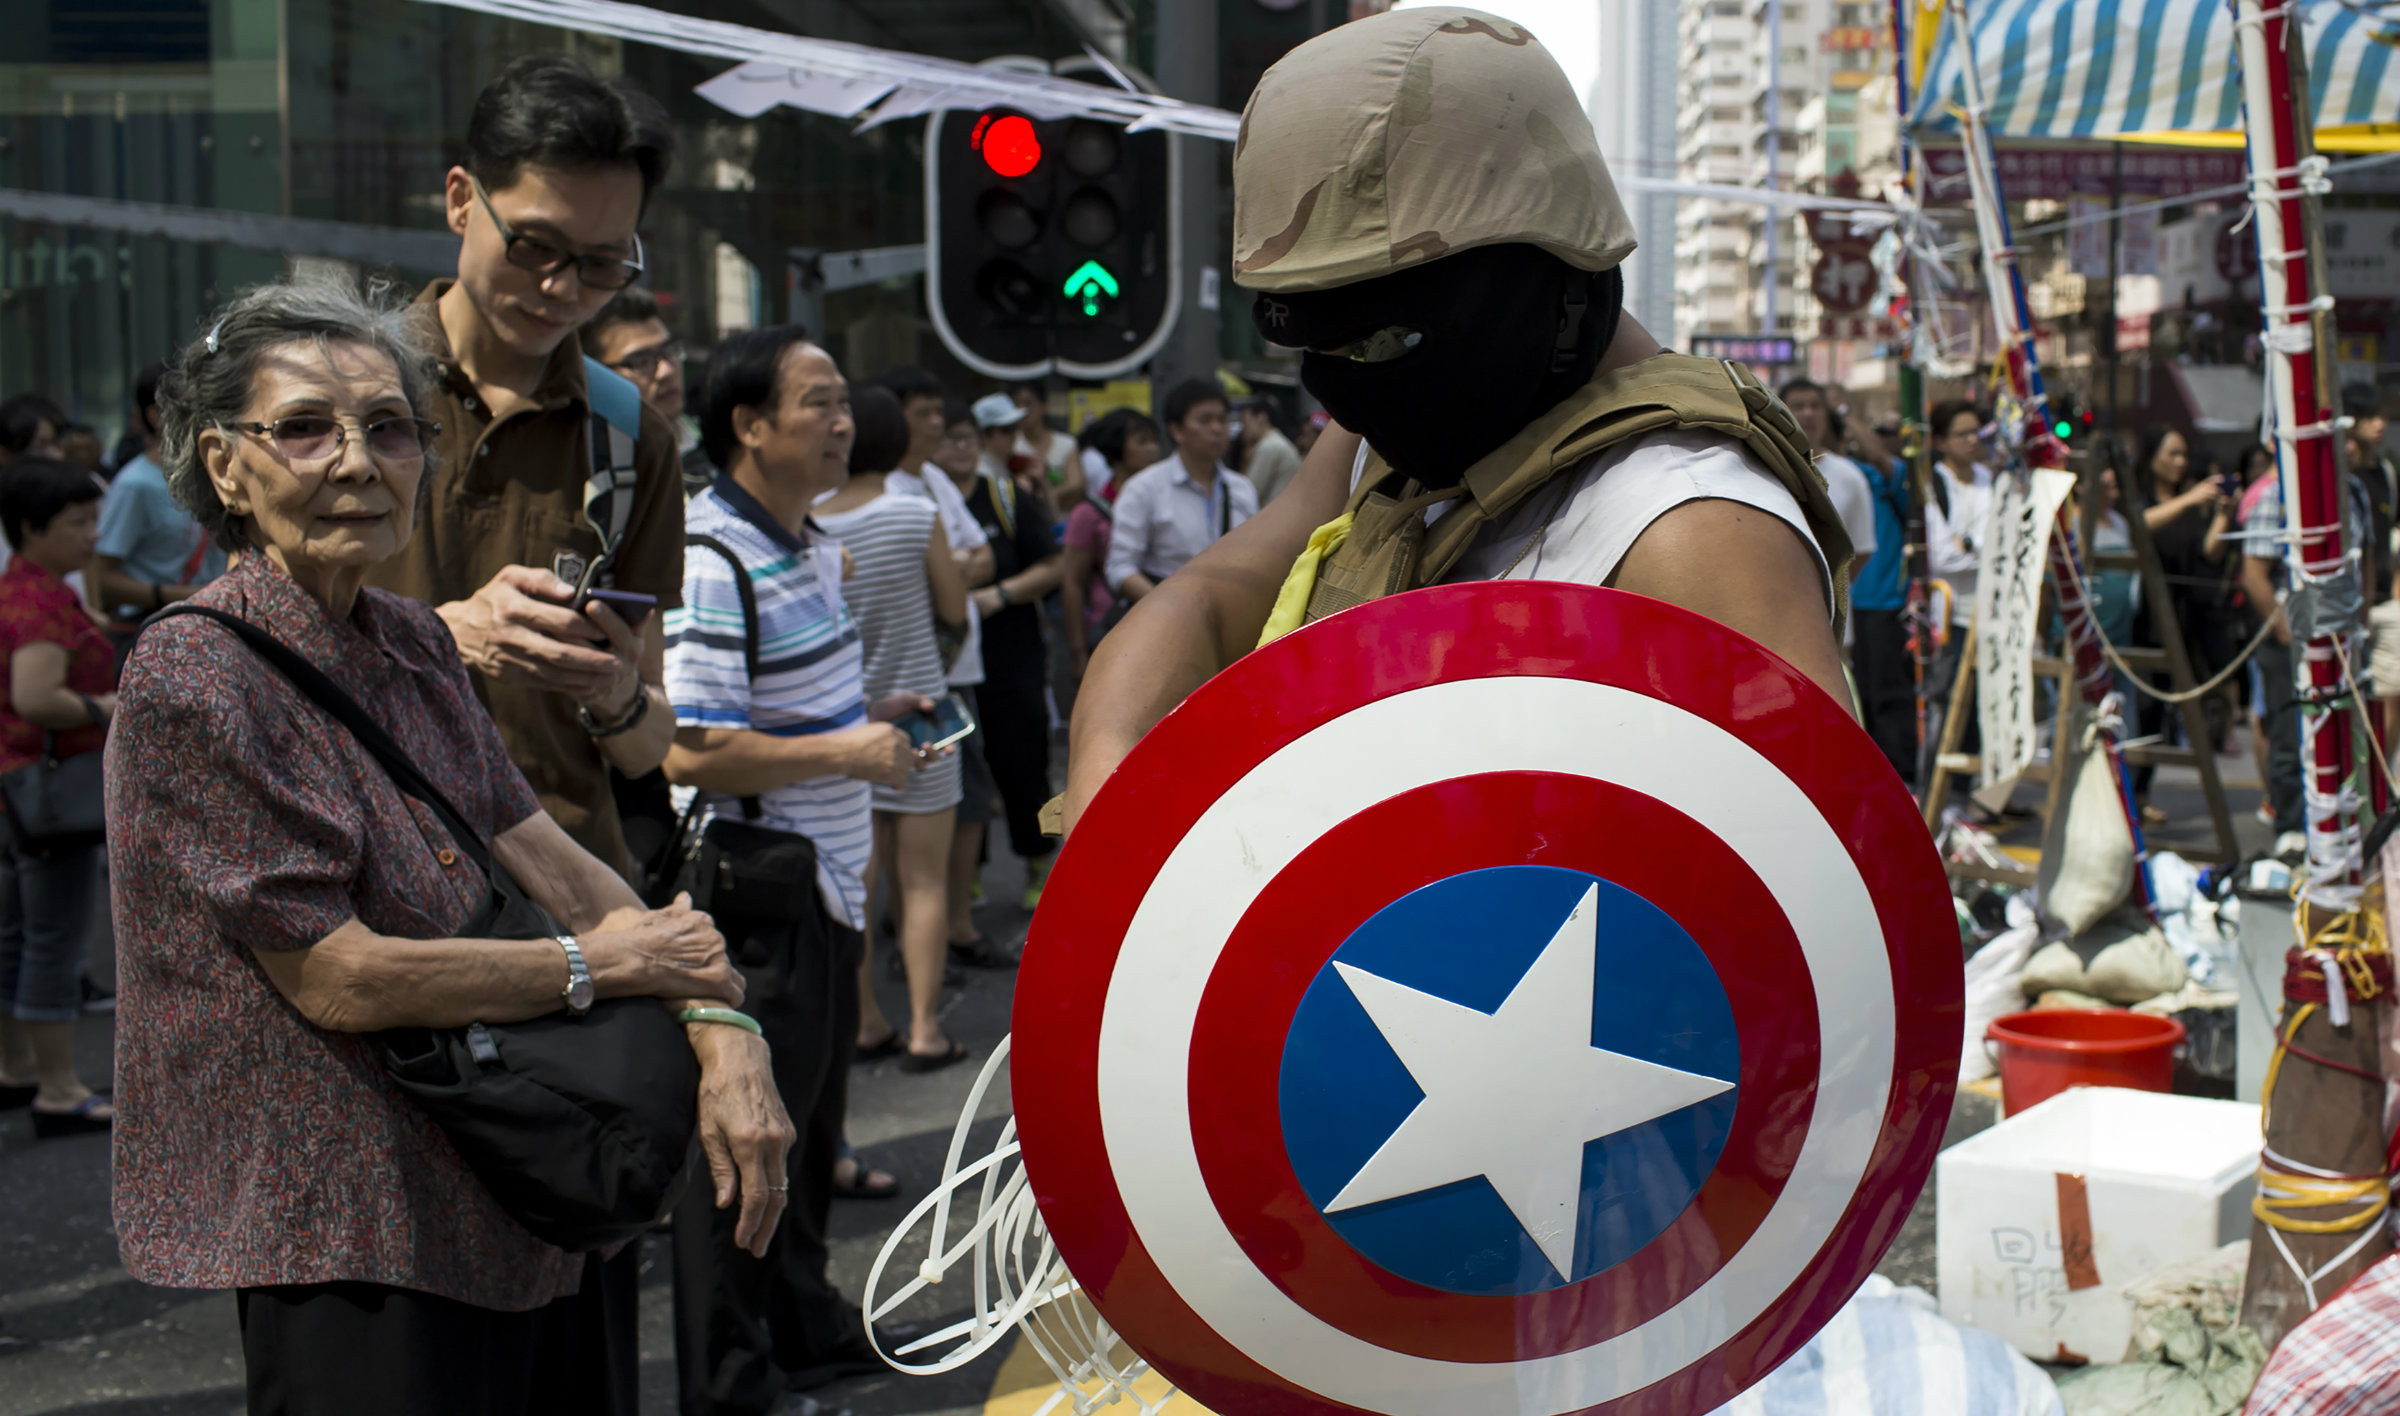 A man dressed as Captain America at the Hong Kong protests